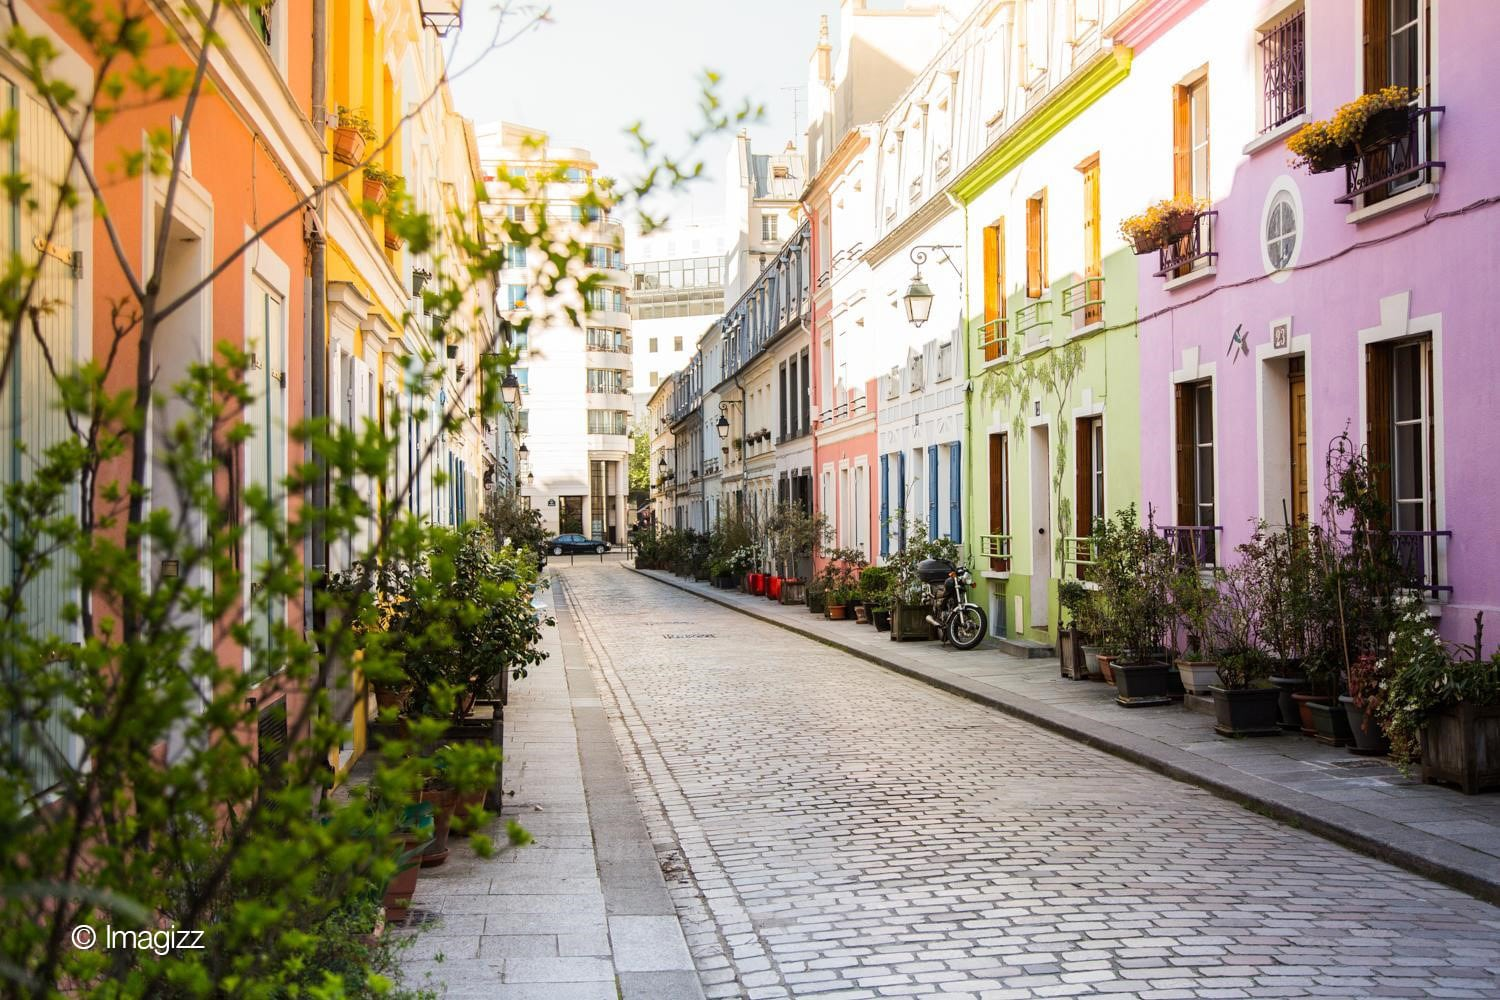 Paris's hidden gems